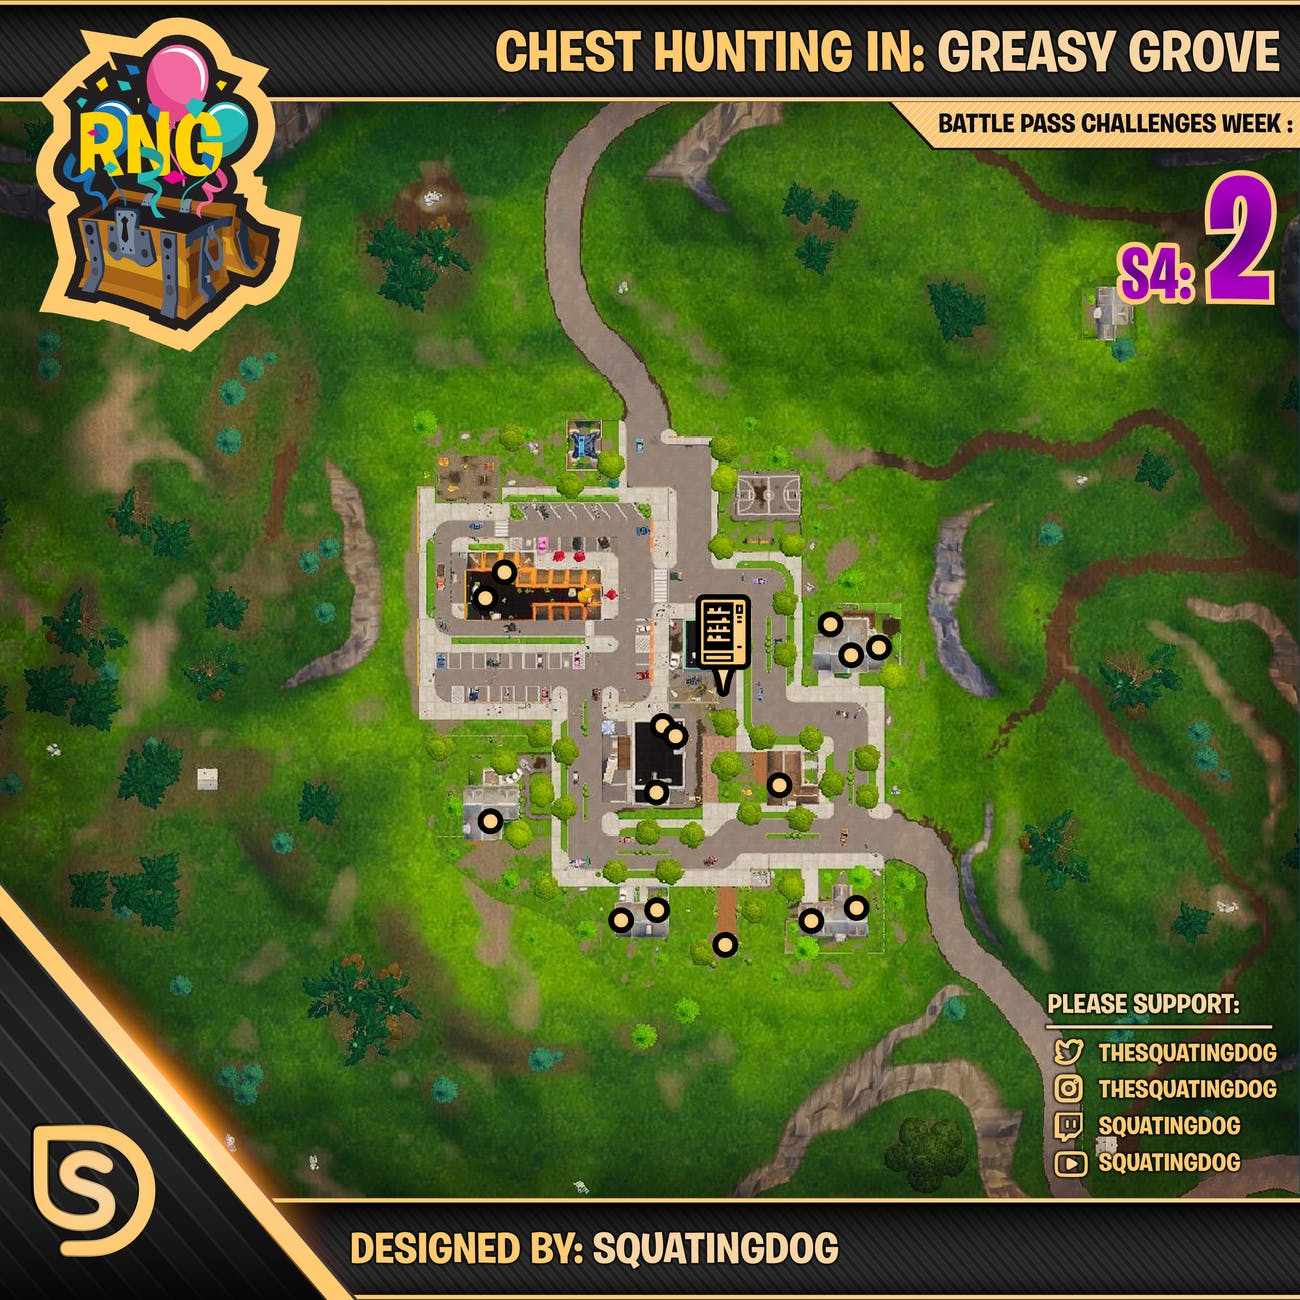 greasy grove chest map - fortnite time challenges